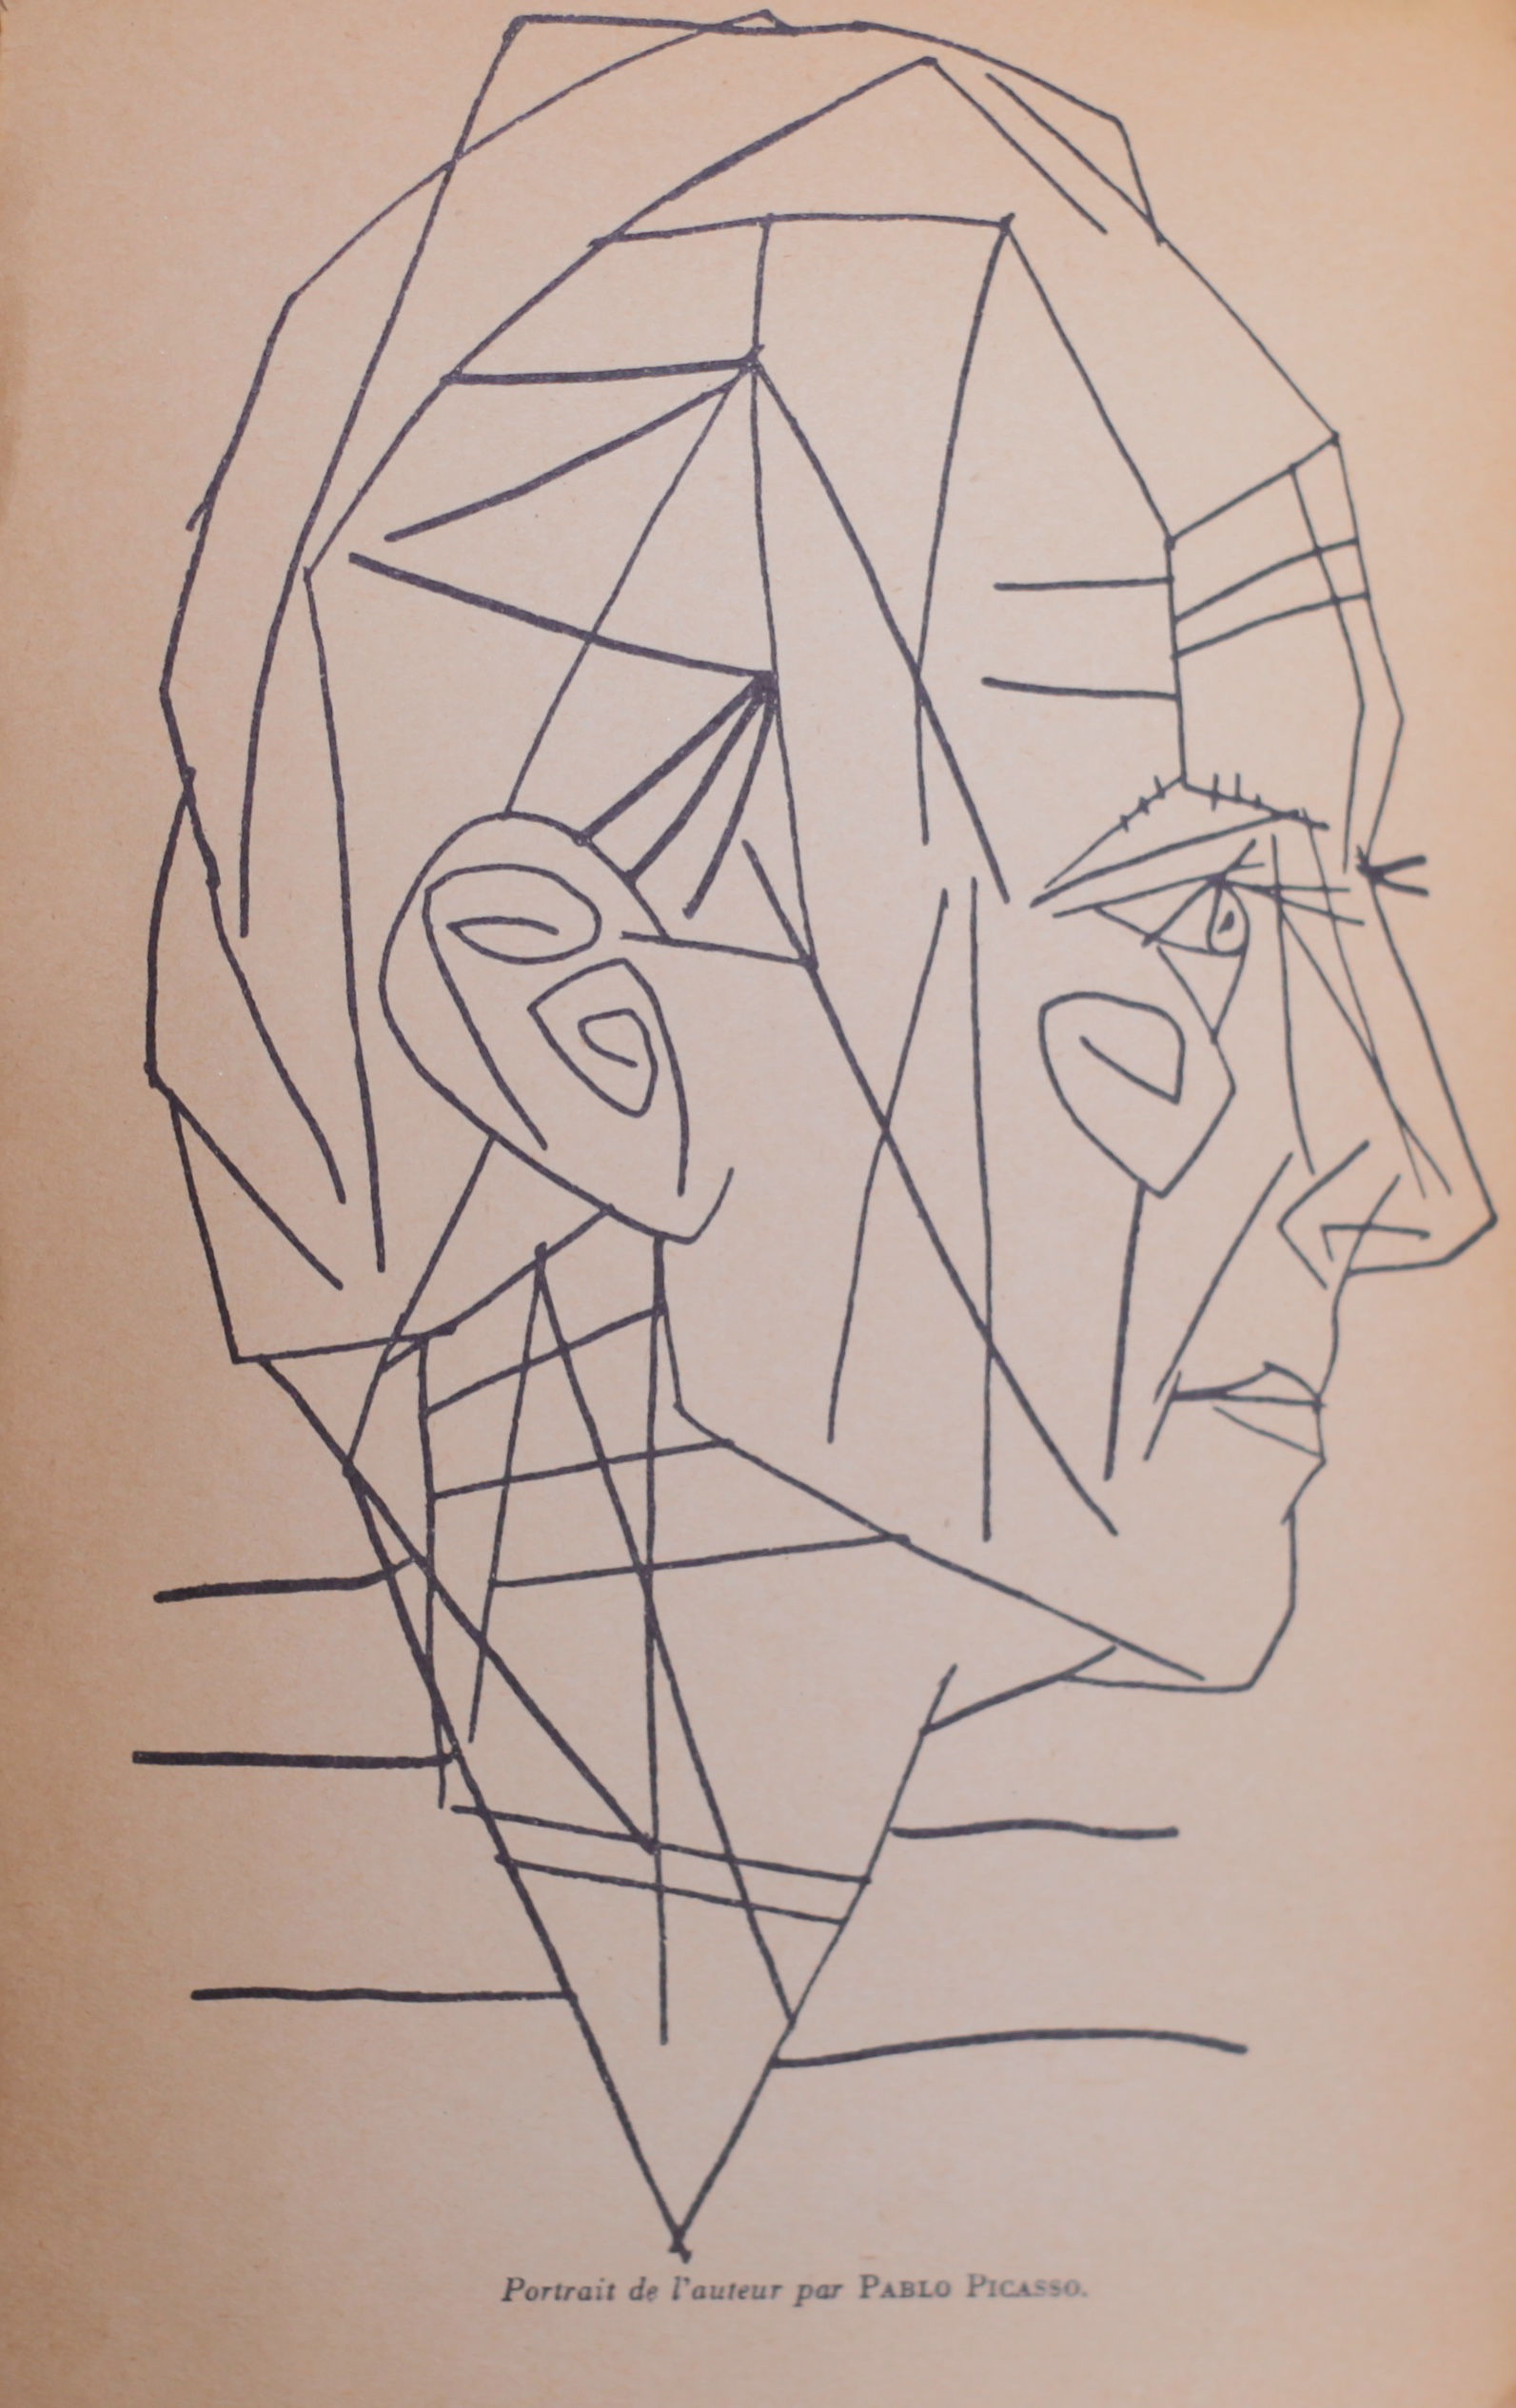 The Picasso frontispiece